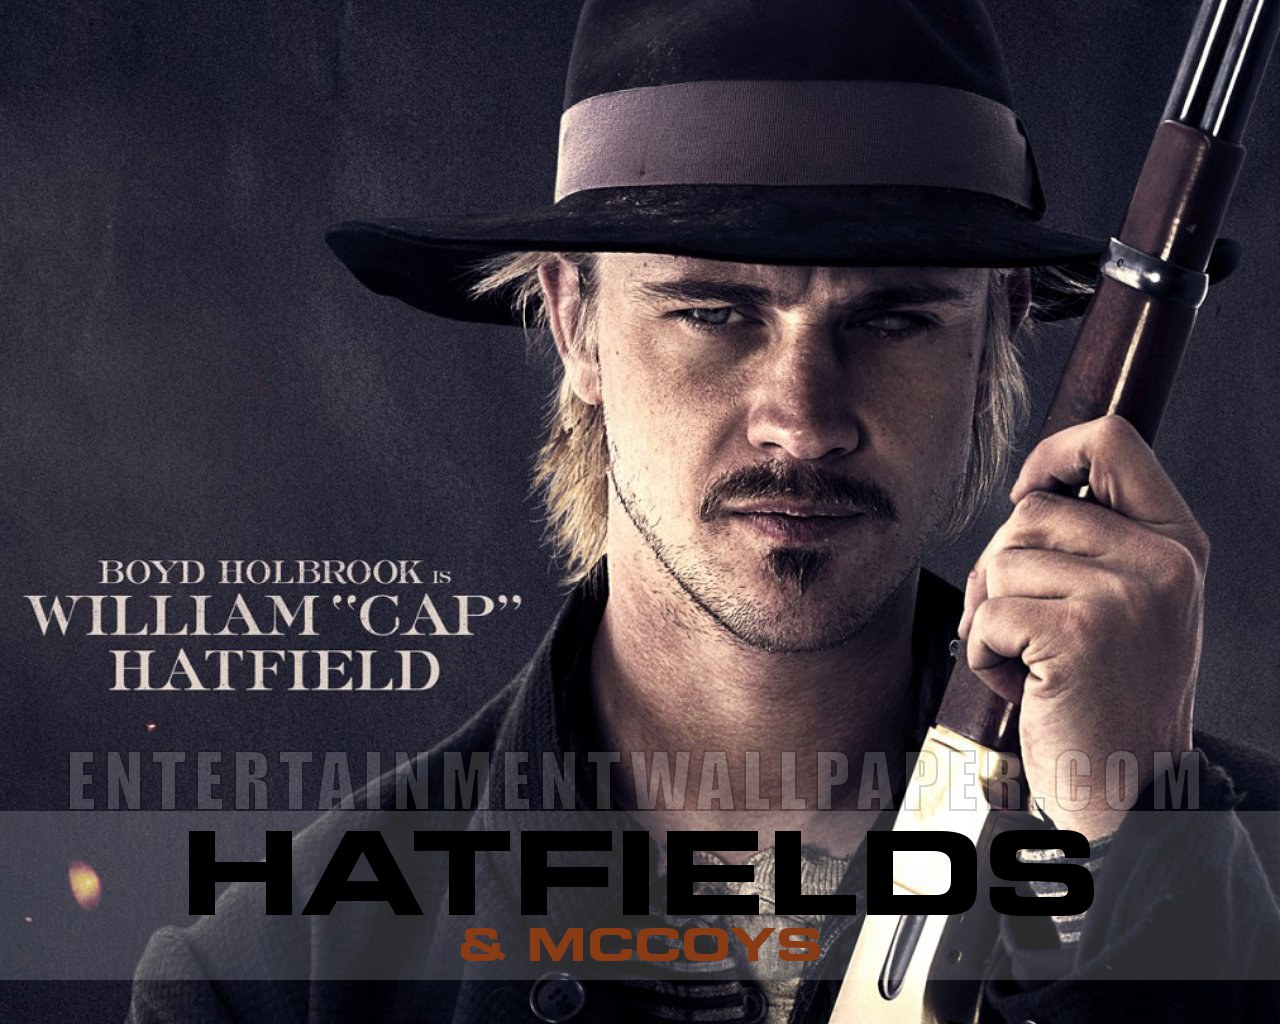 Hatfield And Mccoys